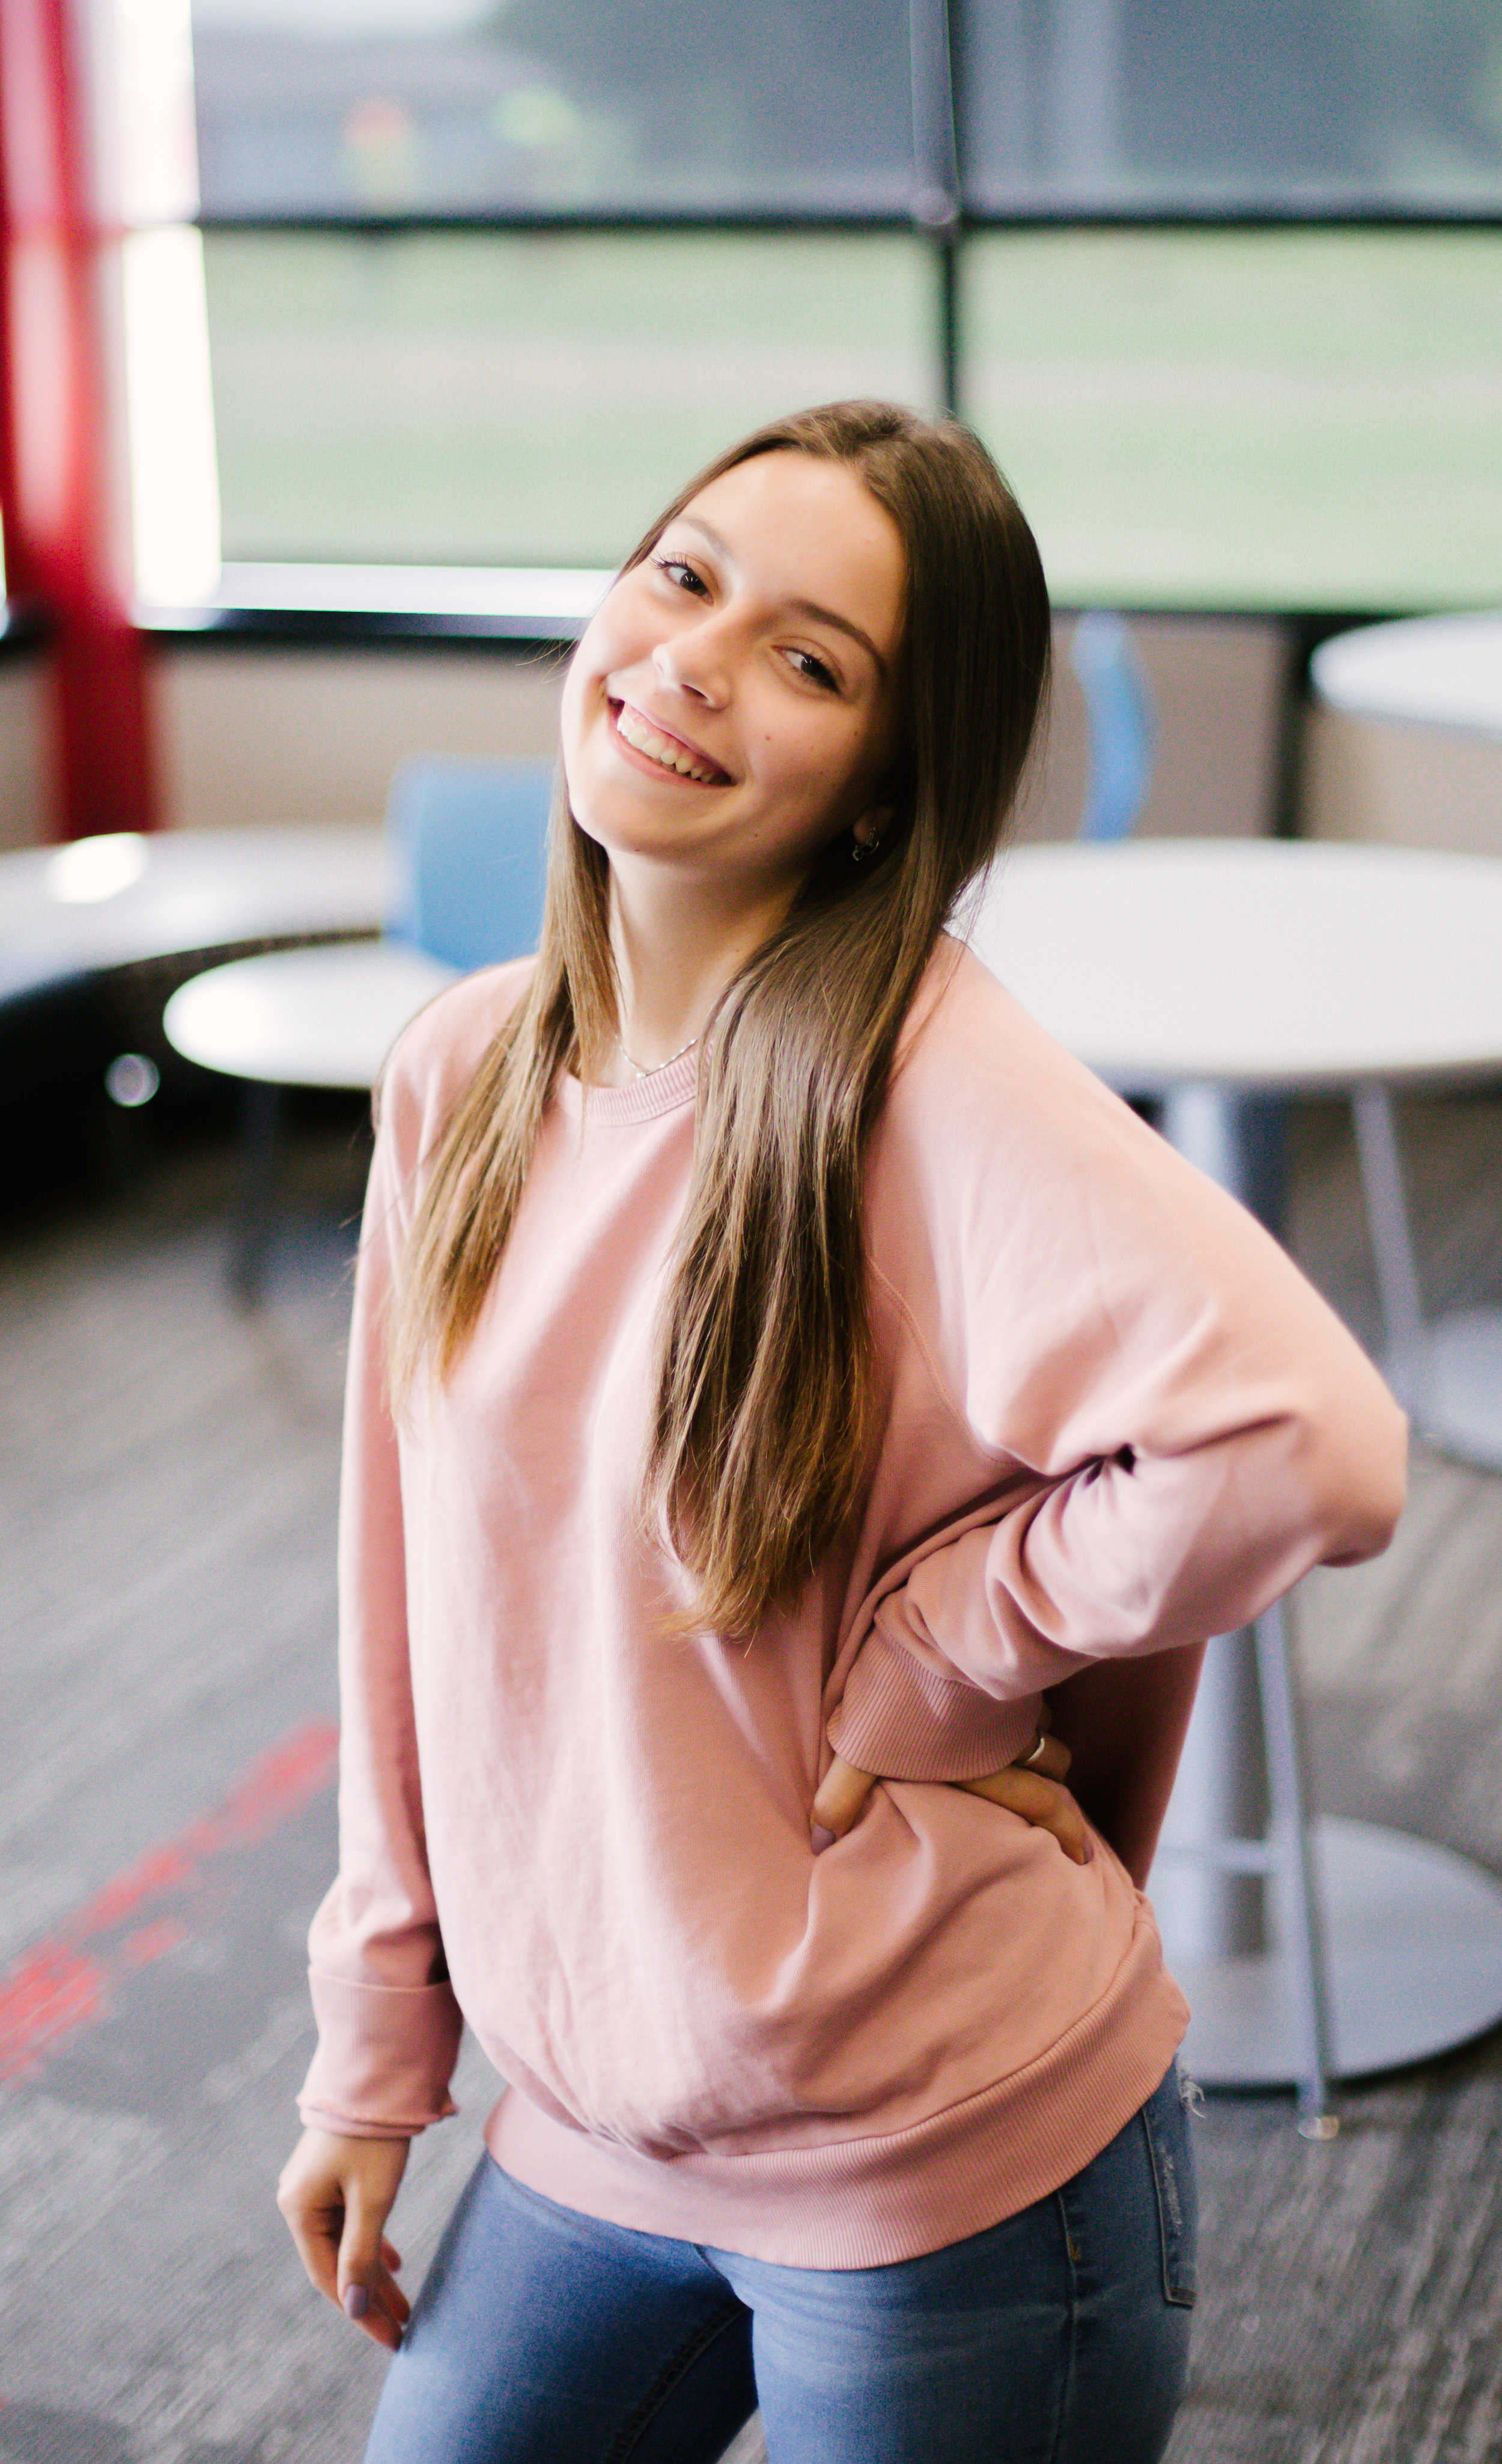 MEET ALICE! - Hi, I'm Alice Tugnetti. I'm 17 and I am a foreign exchange student from Italy. I'm in Digital Media because I like photography. I love music and all the food, but I love Italian food the most! Some fun facts about me: I did classical dance for ten years, I can play the violin, and I have never seen a horror movie.